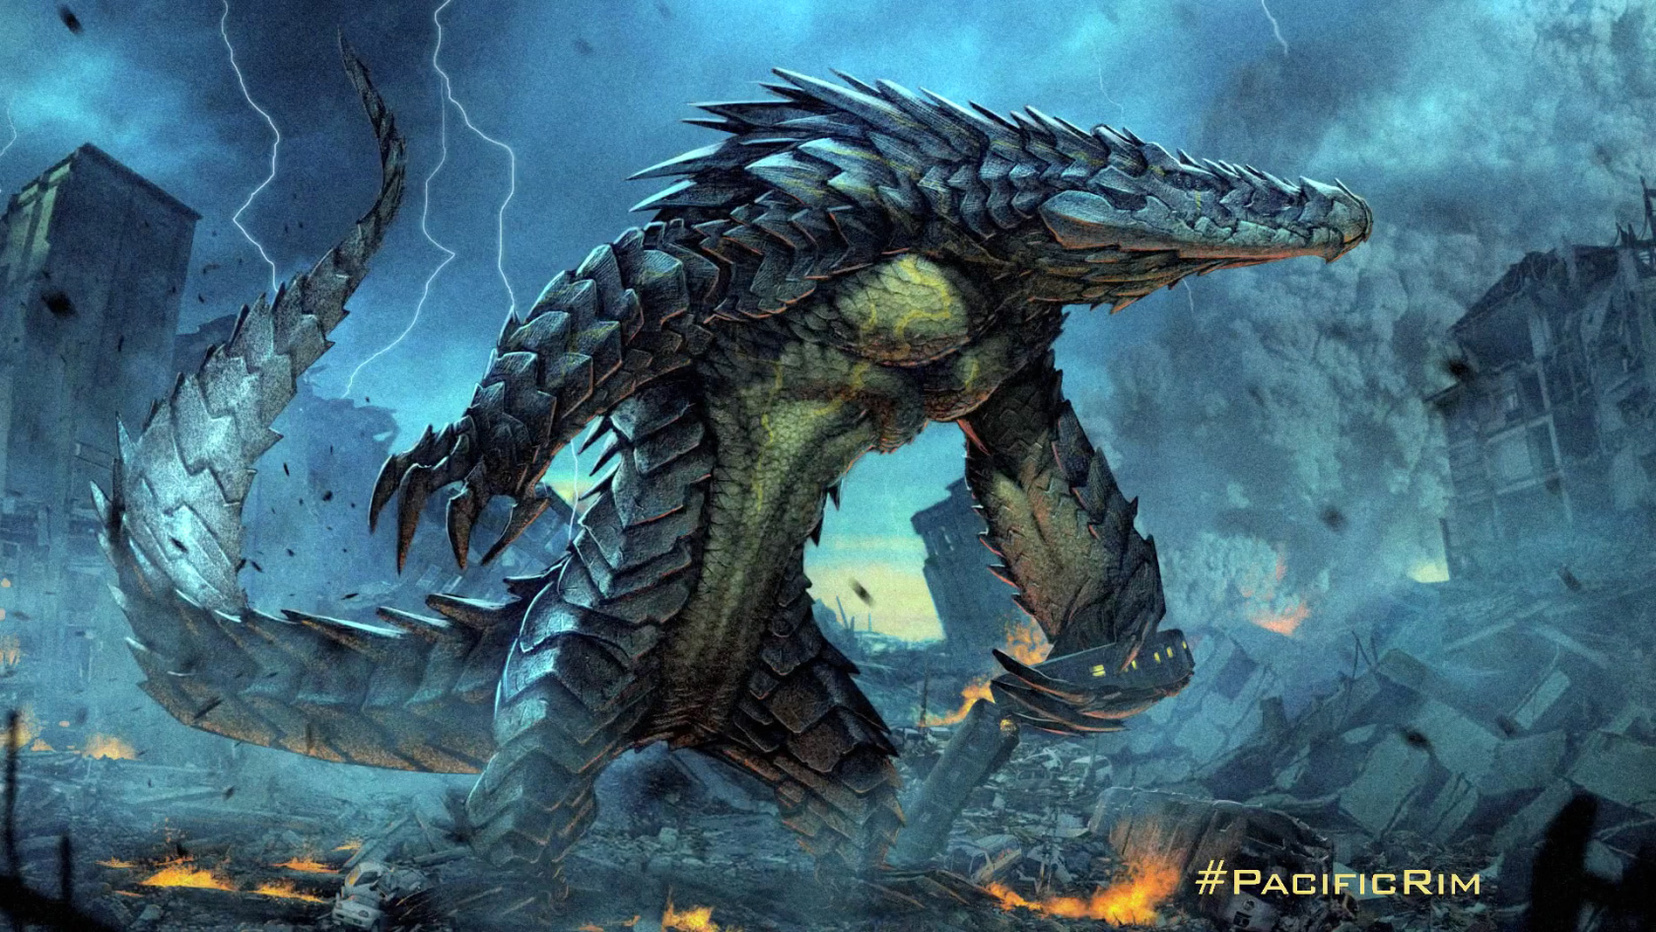 pacific rim kaiju download hd wallpapers and free images